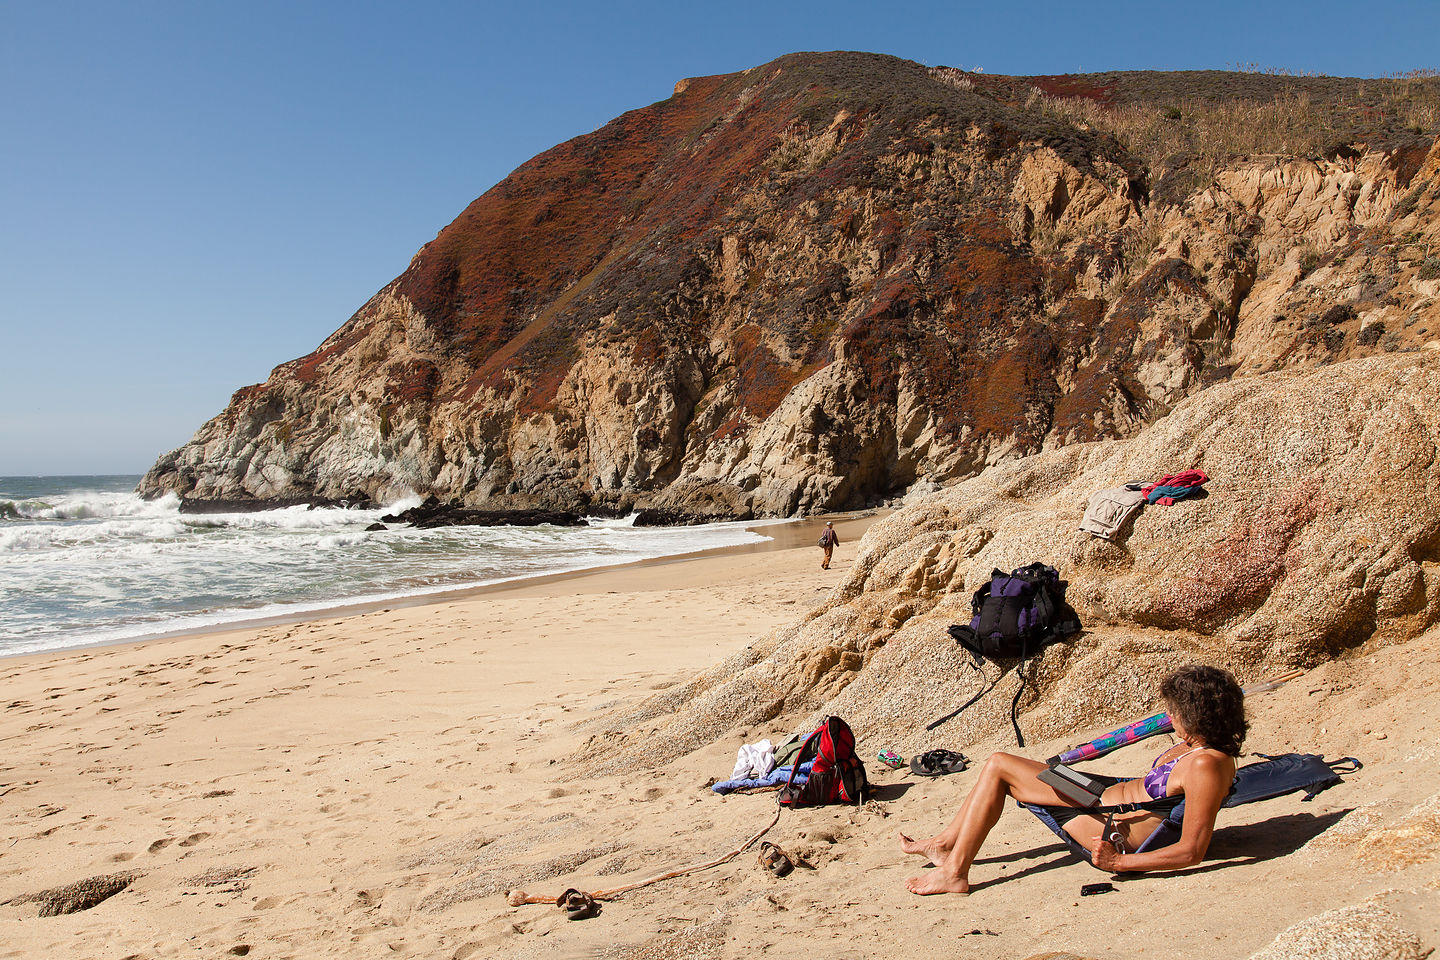 Lolo at Gray Whale Cove State Beach